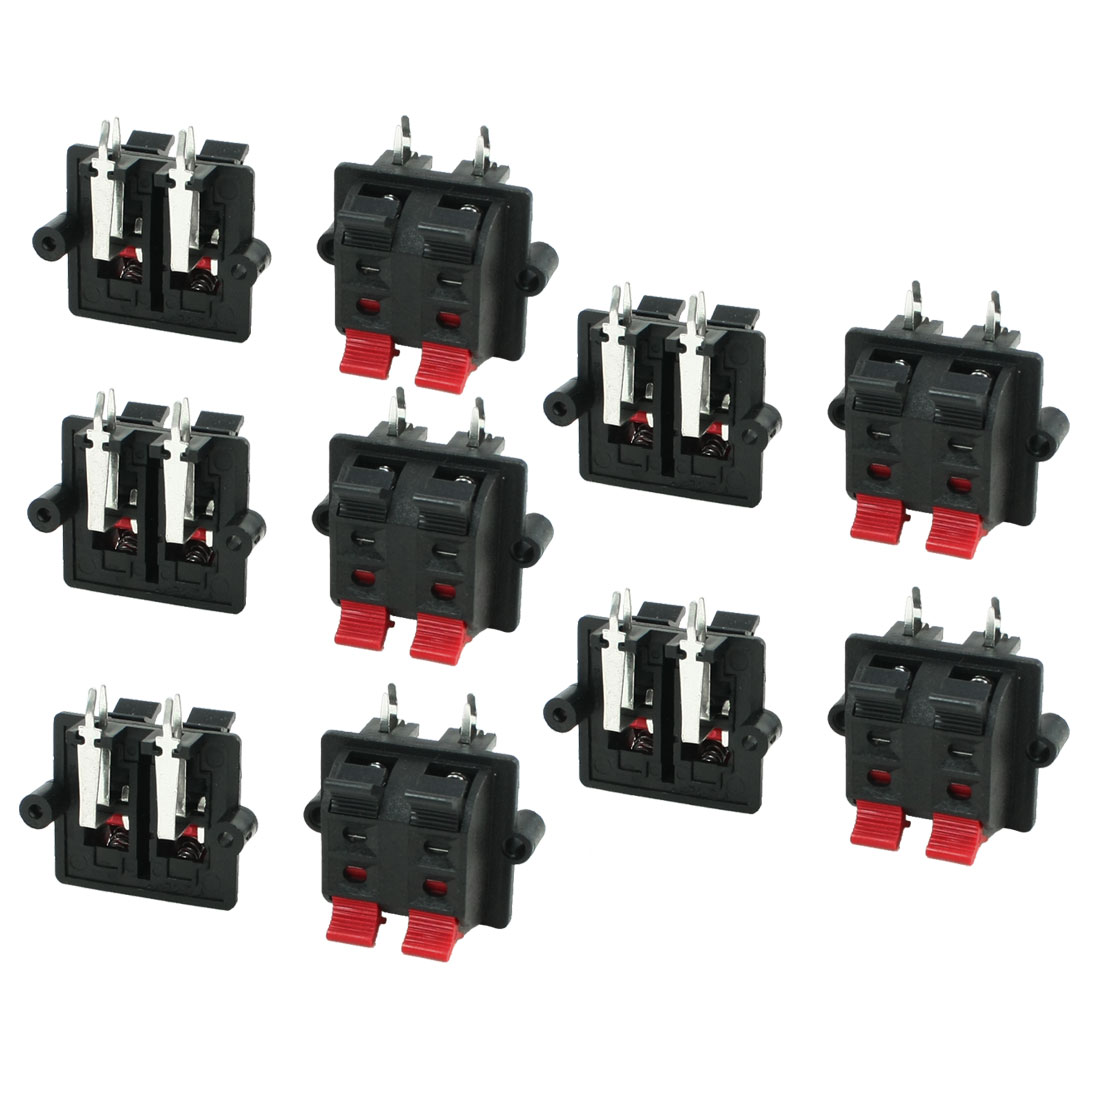 Double Row 2 Black 2 Red 4 Positions Speaker Terminal Plate 4P 10 Pcs